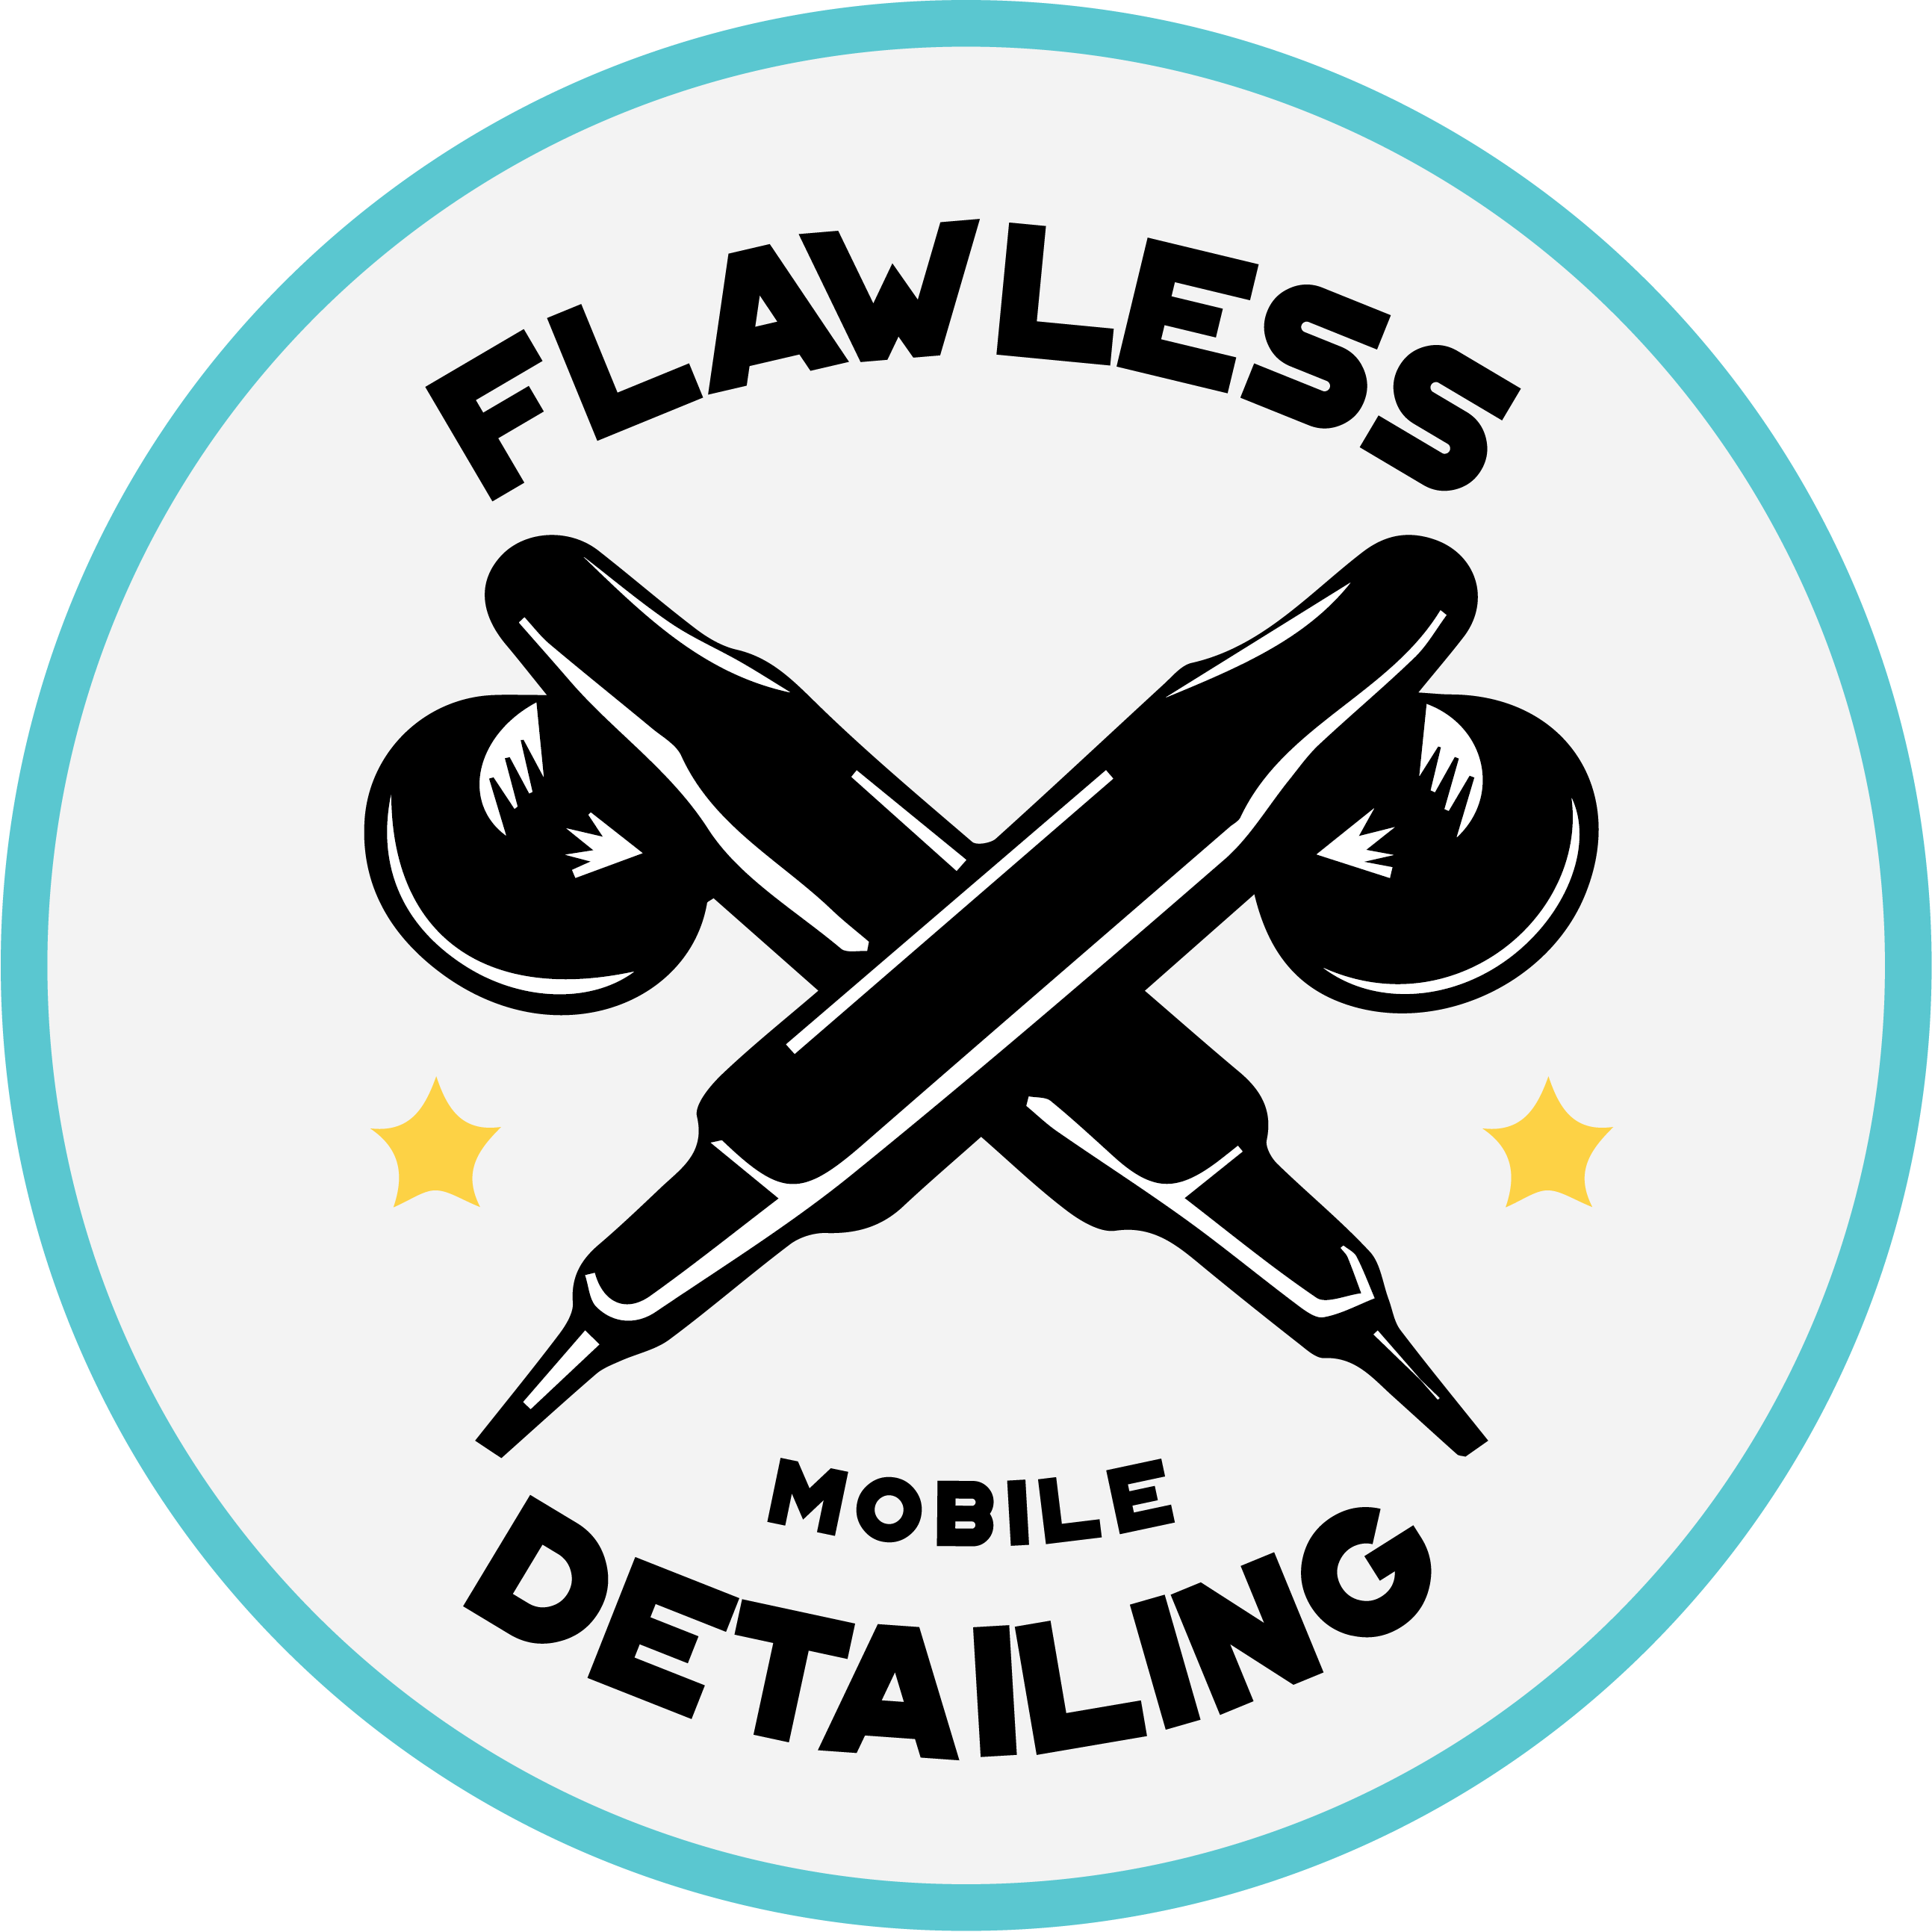 Flawless Mobile Detailing